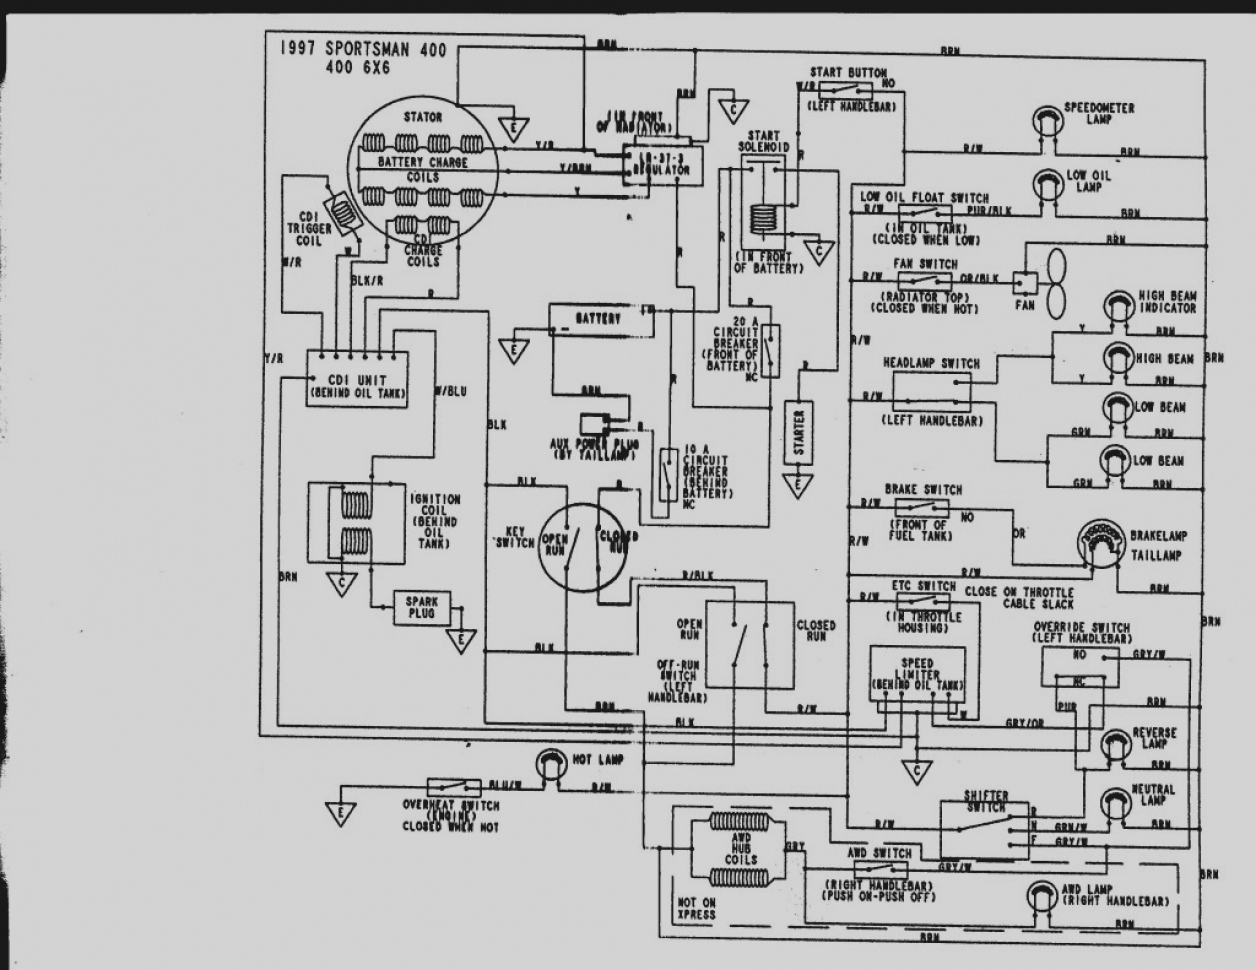 polaris 800 engine diagram polaris 800 wiring diagram polaris ranger wiring diagram | free wiring diagram